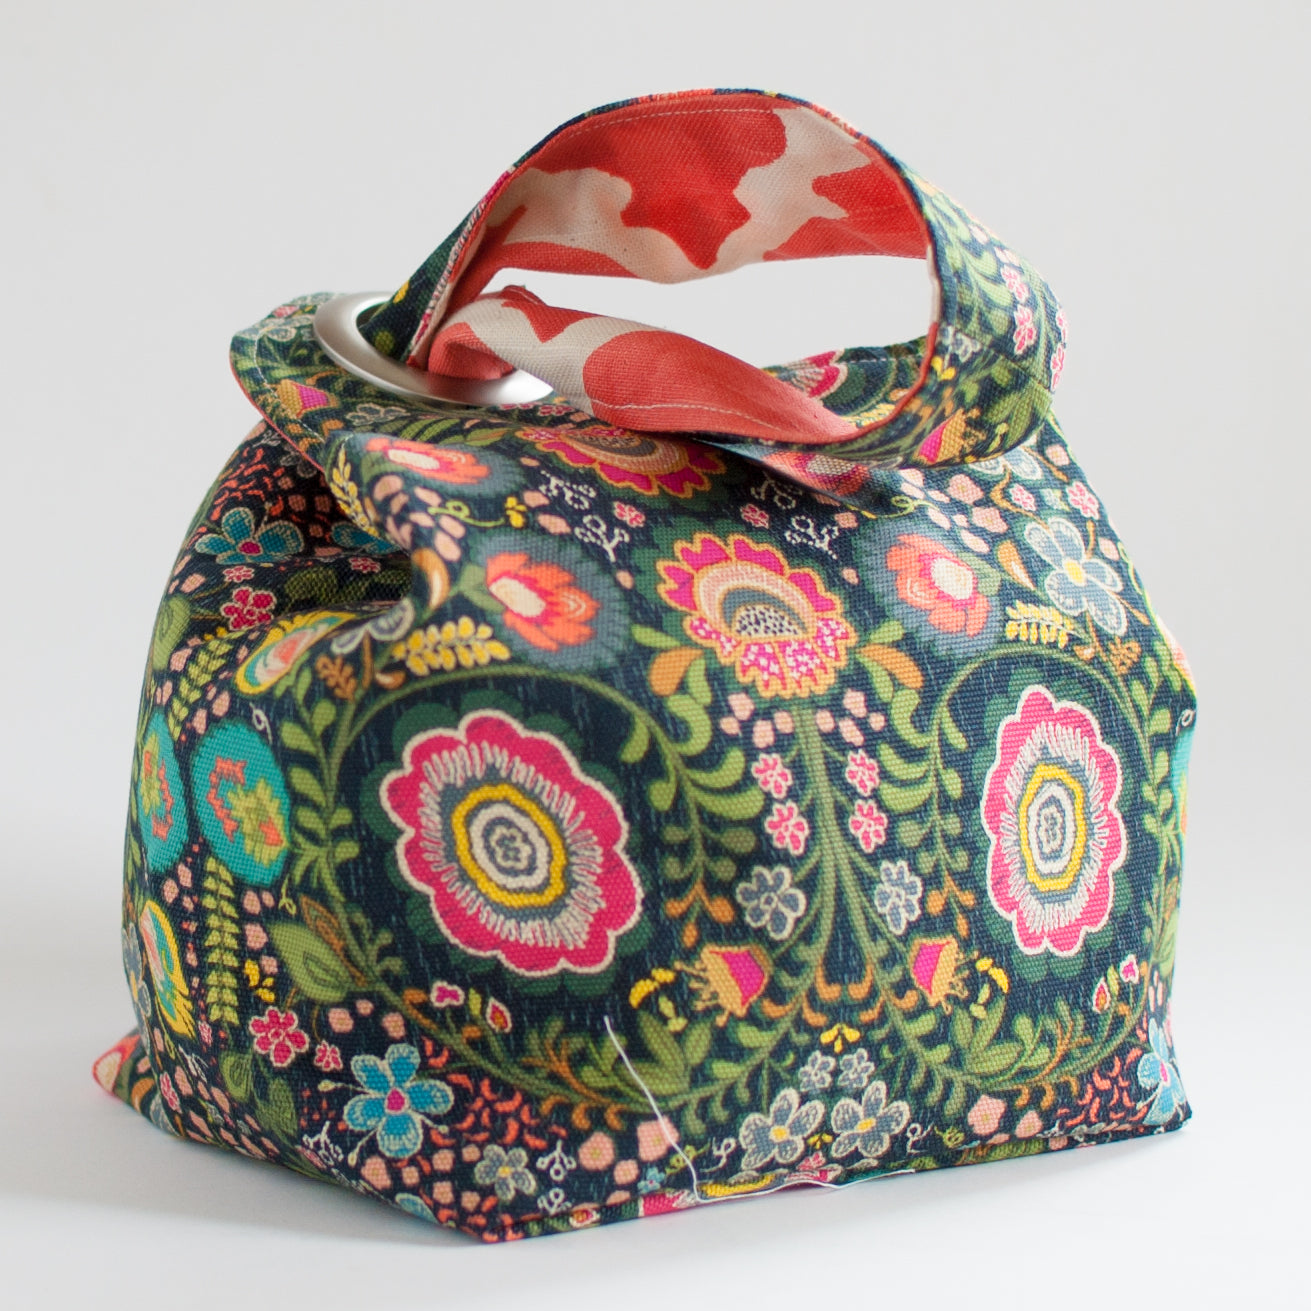 Garden Party - Medium Dumpling Bag